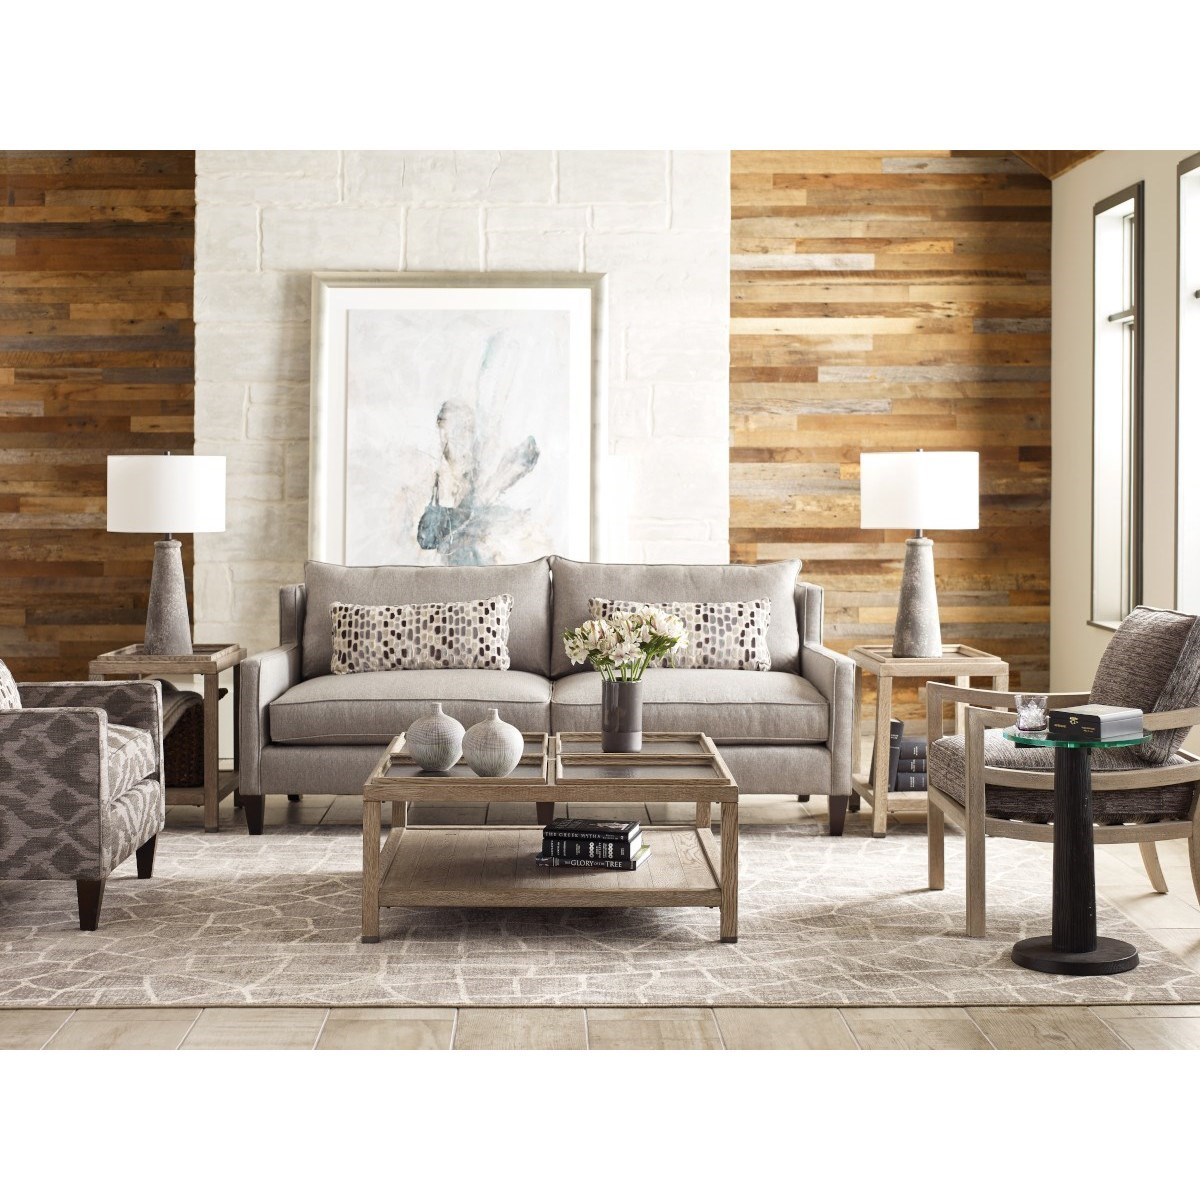 Alta Living Room Group 1 by Kincaid Furniture at Lindy's Furniture Company